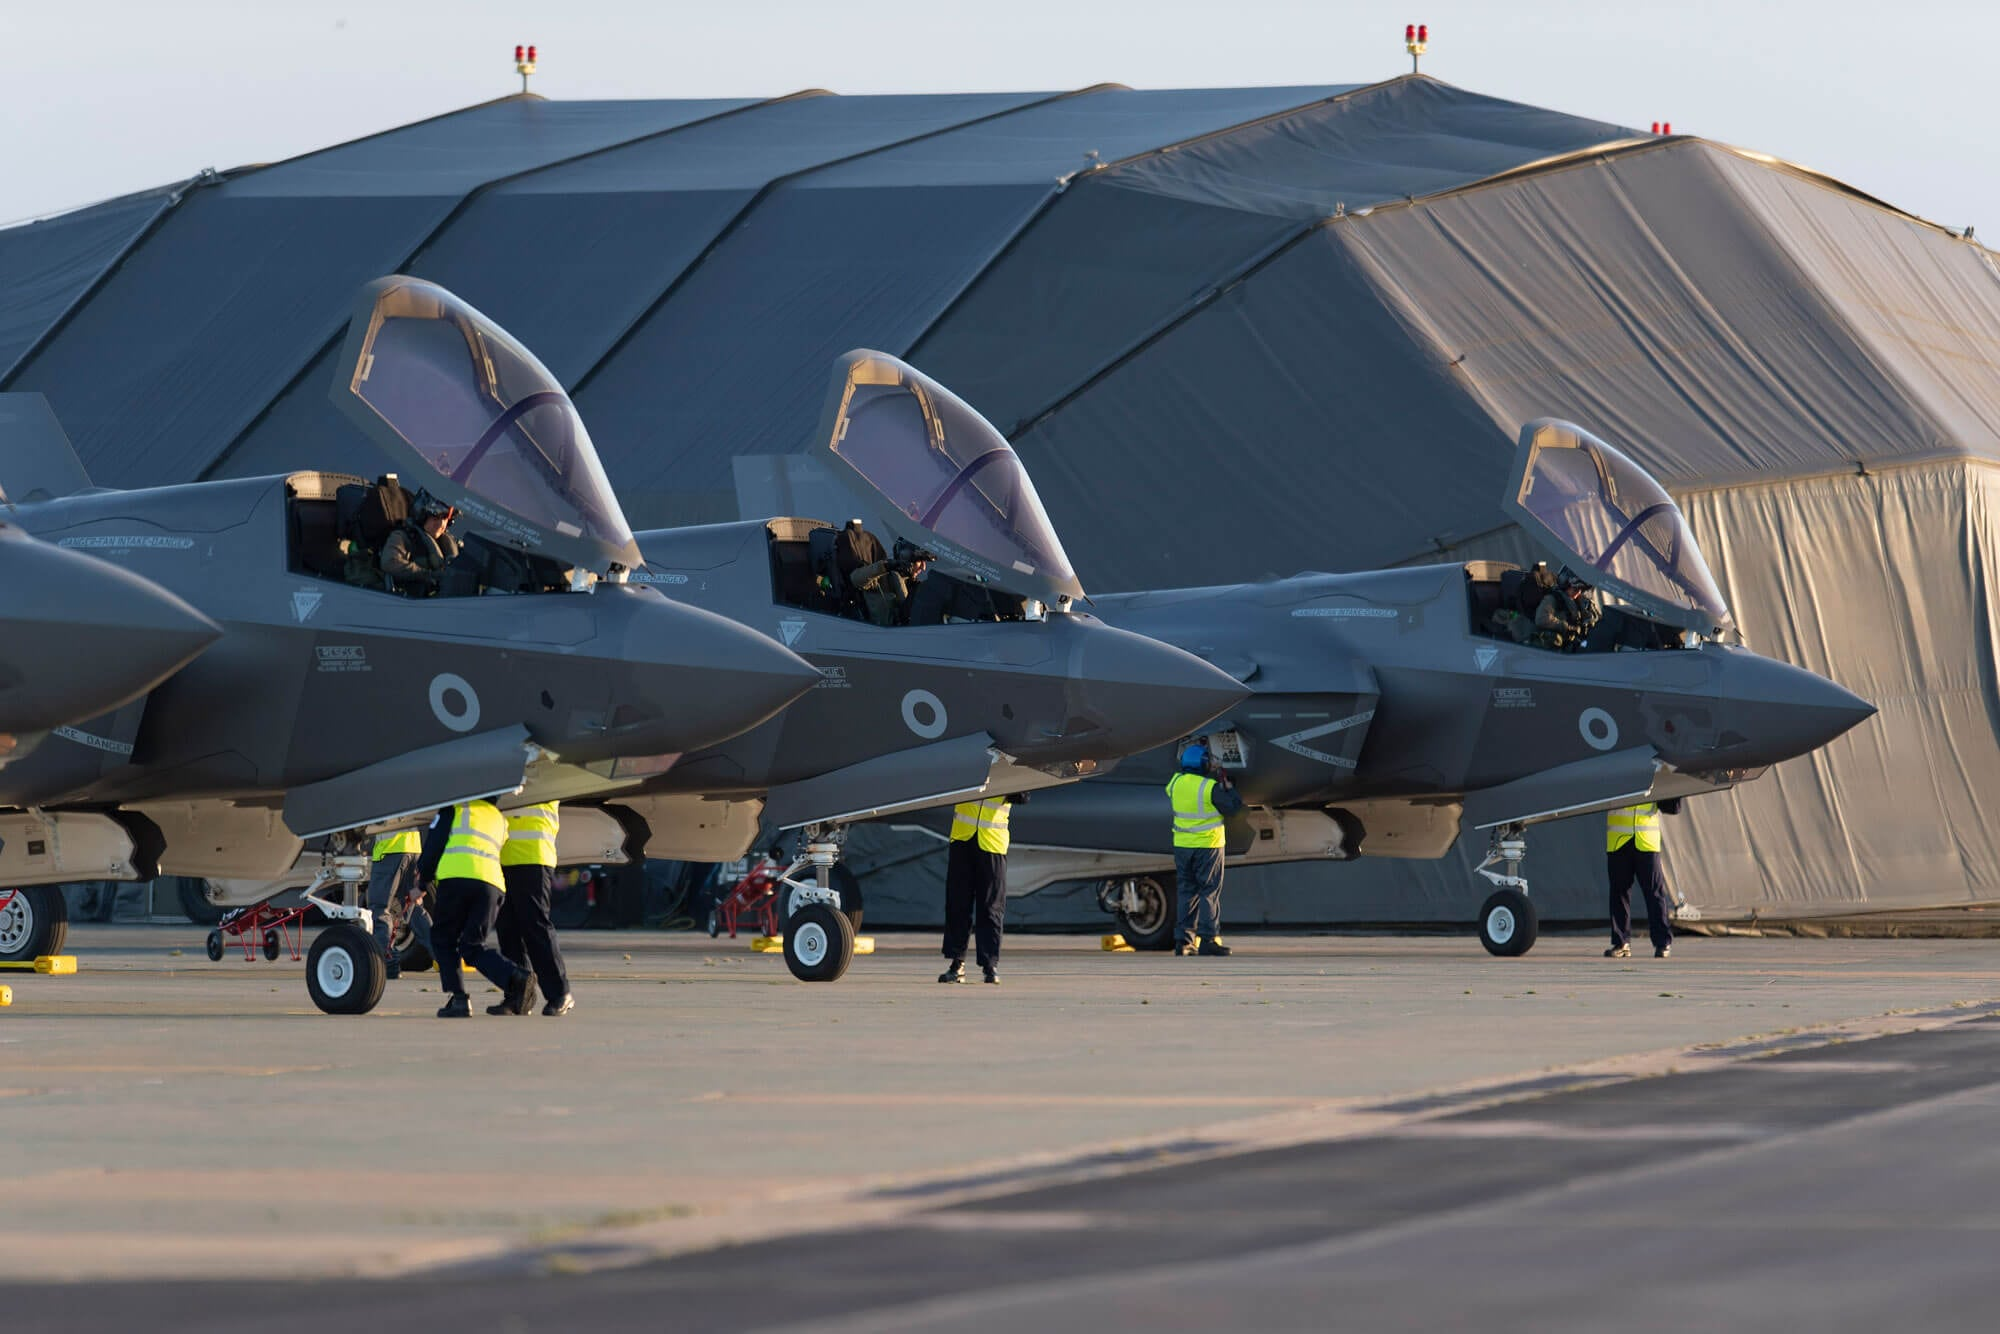 Three F-35s parked in a row